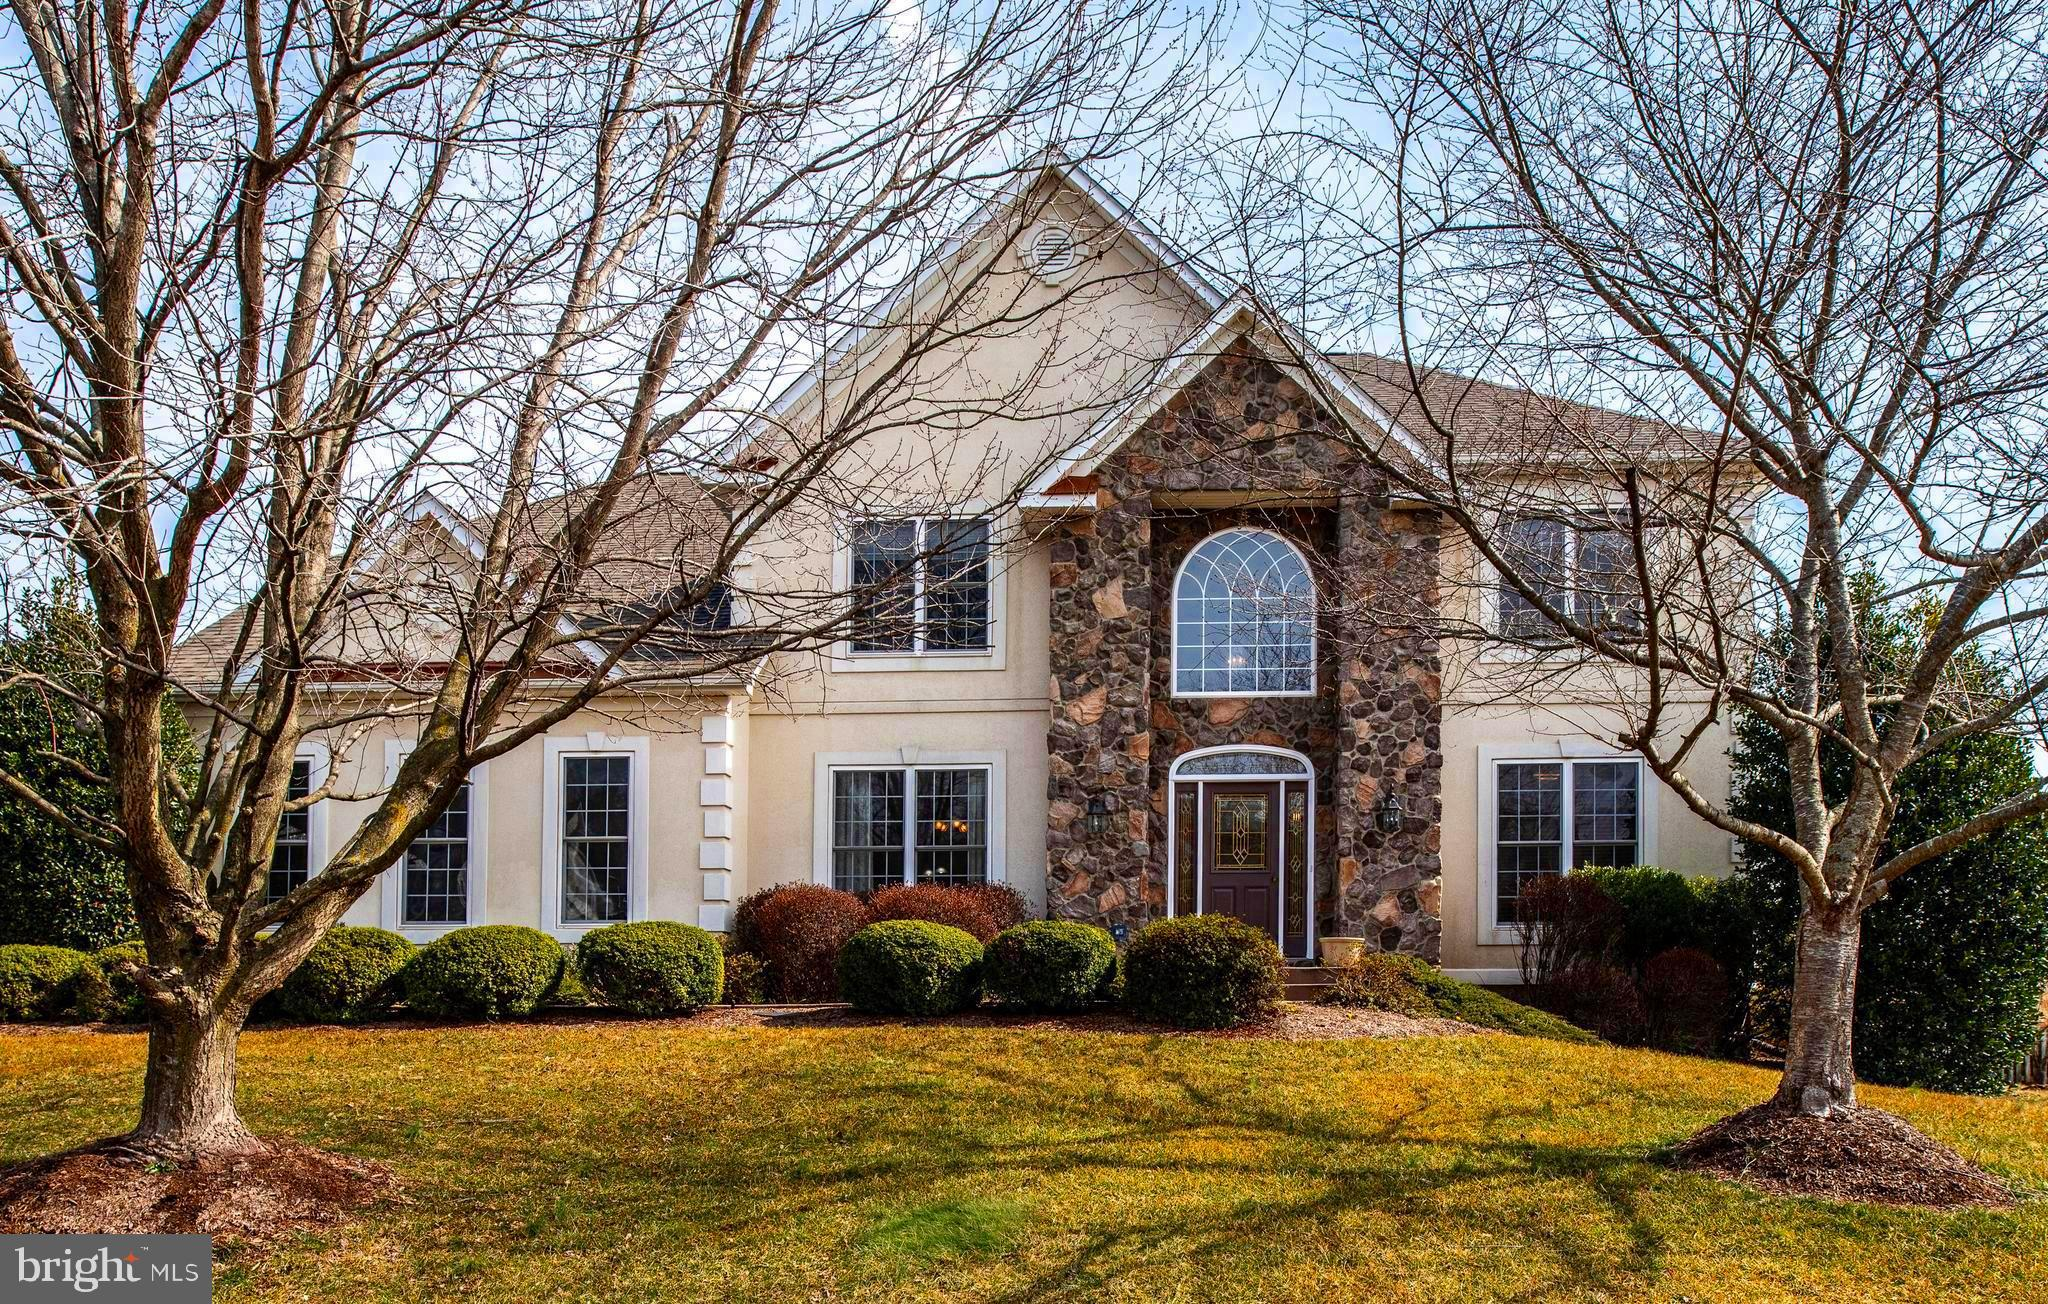 JUST LISTED & NEW TO THE MARKET is this 4/5 Bedroom, 4.5 bath BEAUTIFUL Stucco and Stone Front Colon